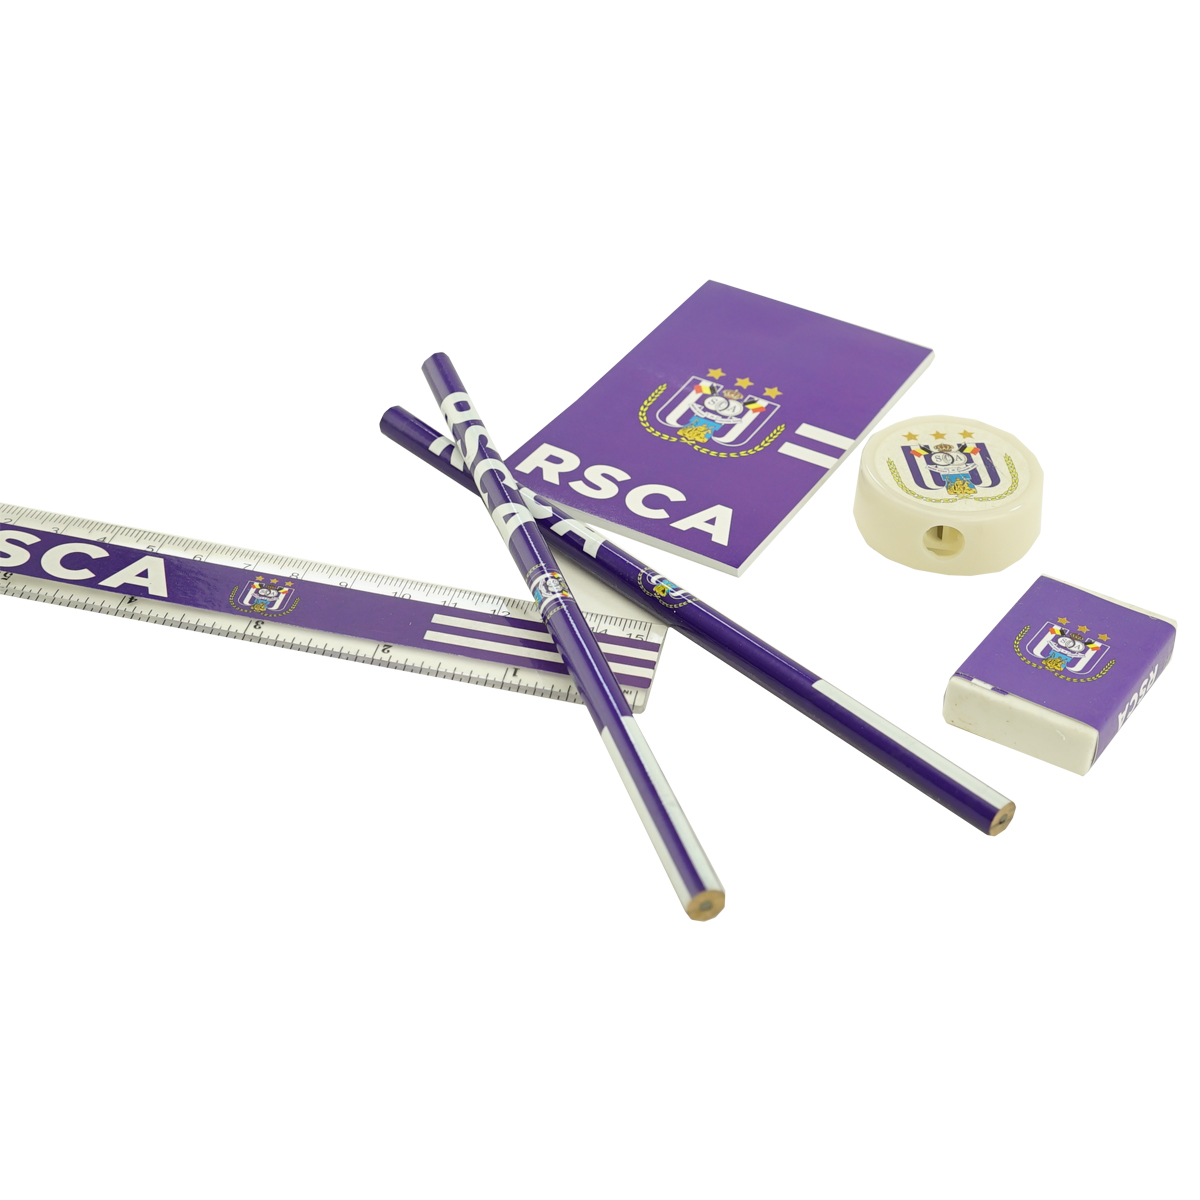 RSCA Back To School Kit